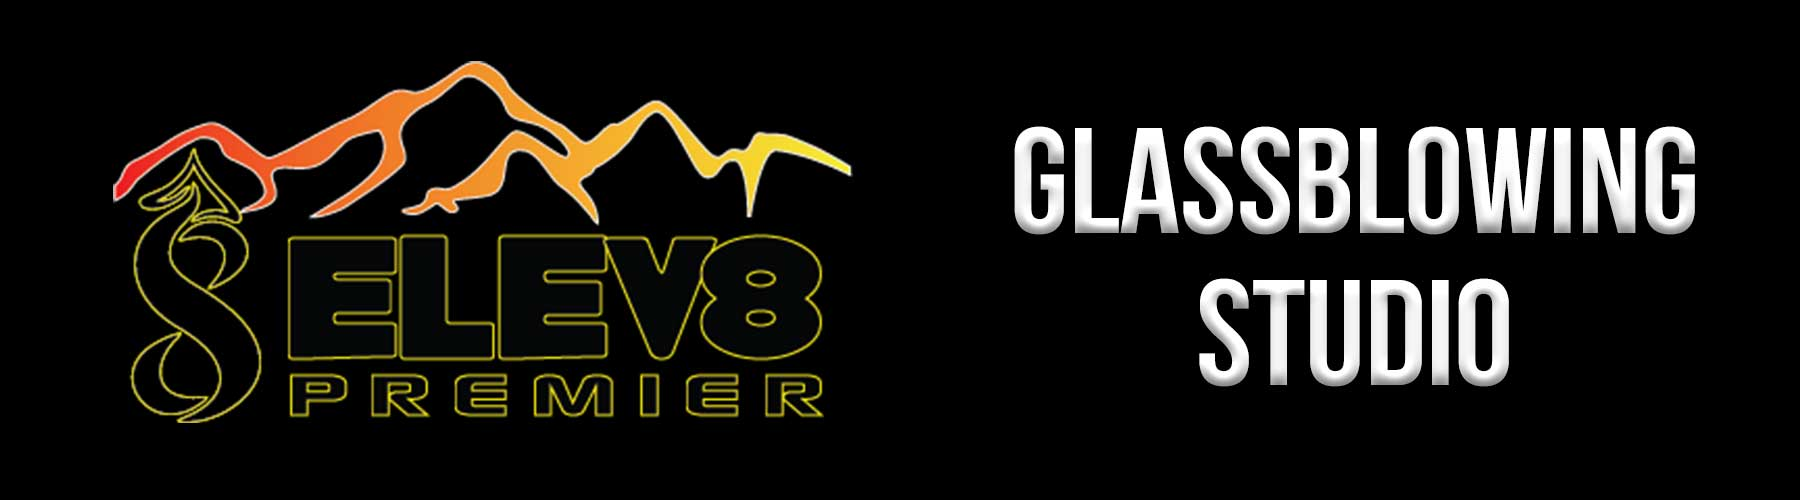 Elev8 Premier Glassblowing Studio